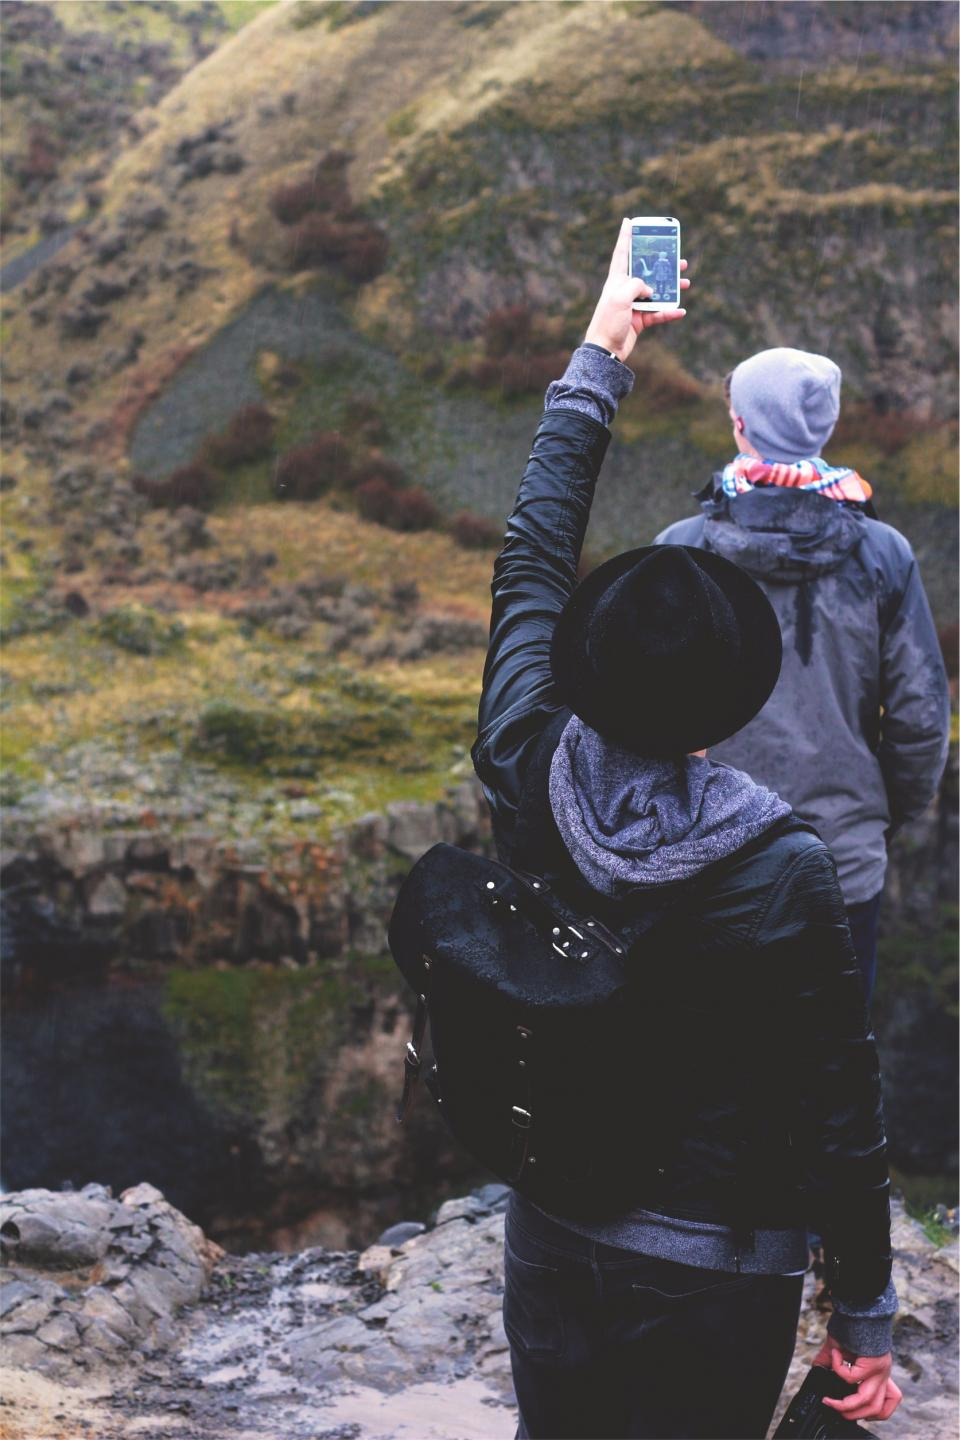 people, nature, outdoors, mobile, cell phone, picture, hat, jacket, fedora, river